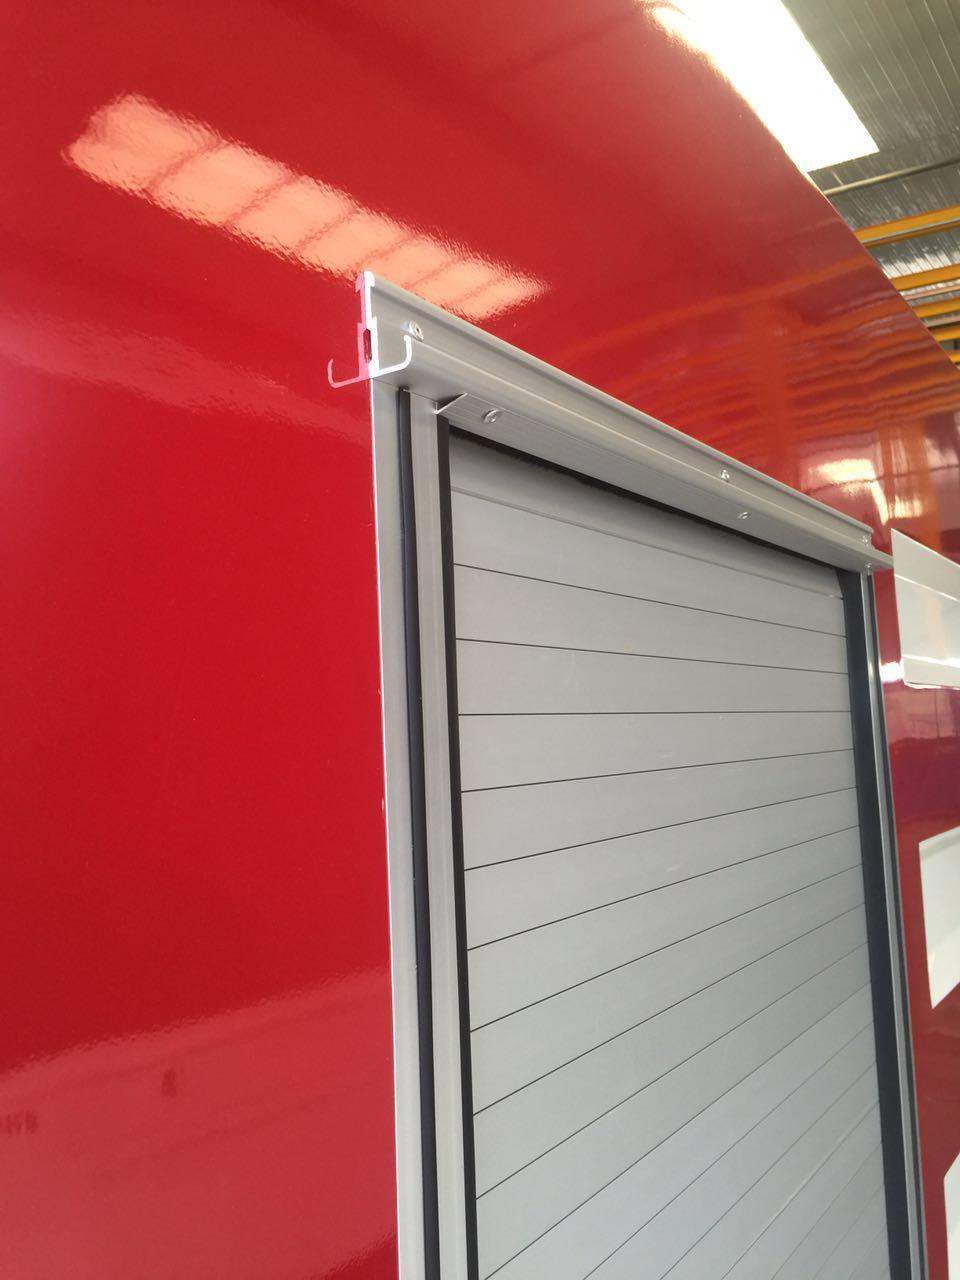 Fire Equipment Aluminium Roll-up Door Cargo Truck Roller Blind Shutter 4